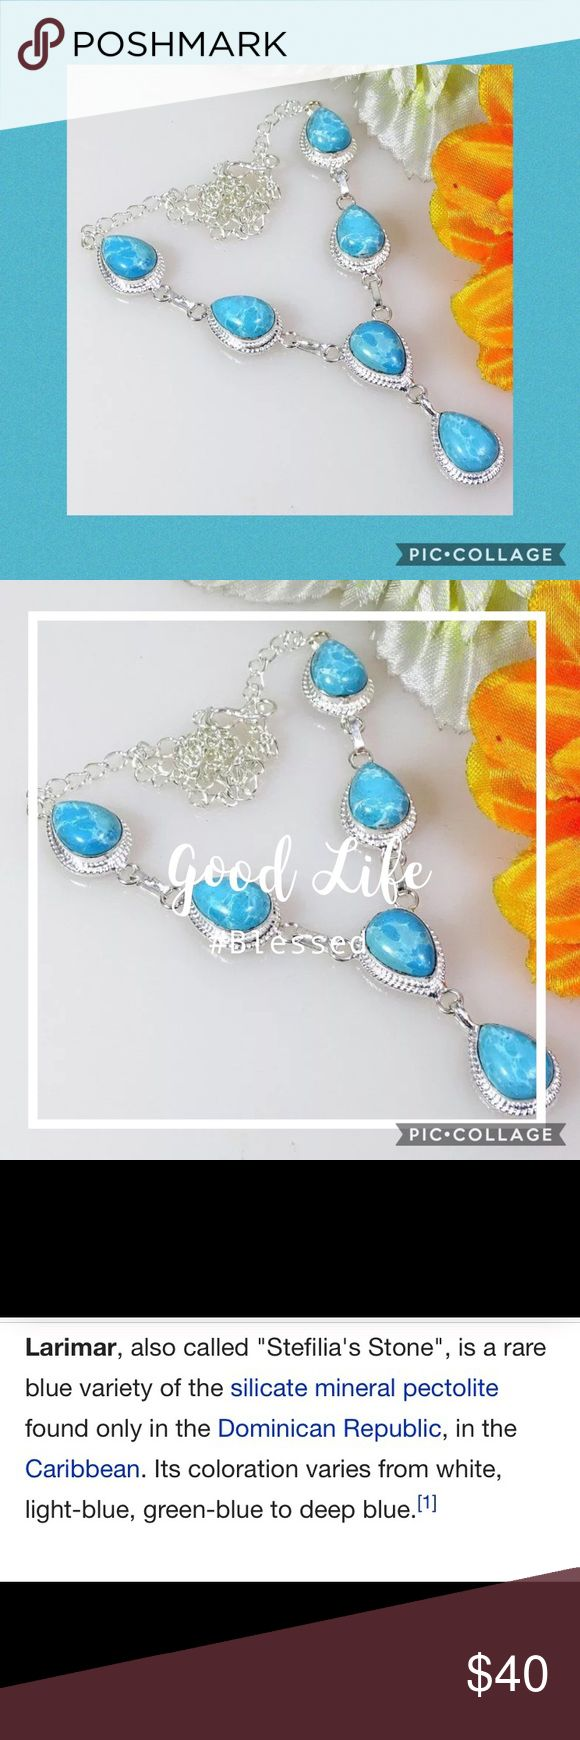 """💠LARIMAR NECKLACE SET IN 925 STERLING SILVER💠 💠GORGEOUS LARIMAR NECKLACE SET IN 925 STERLING SILVER • SIZE: 18""""•                                            COUNTRY OF ORIGIN: DOMINICAN REPUBLIC                                          COUNTRY OF MANUFACTURE: INDIA 💠 Jewelry Necklaces"""